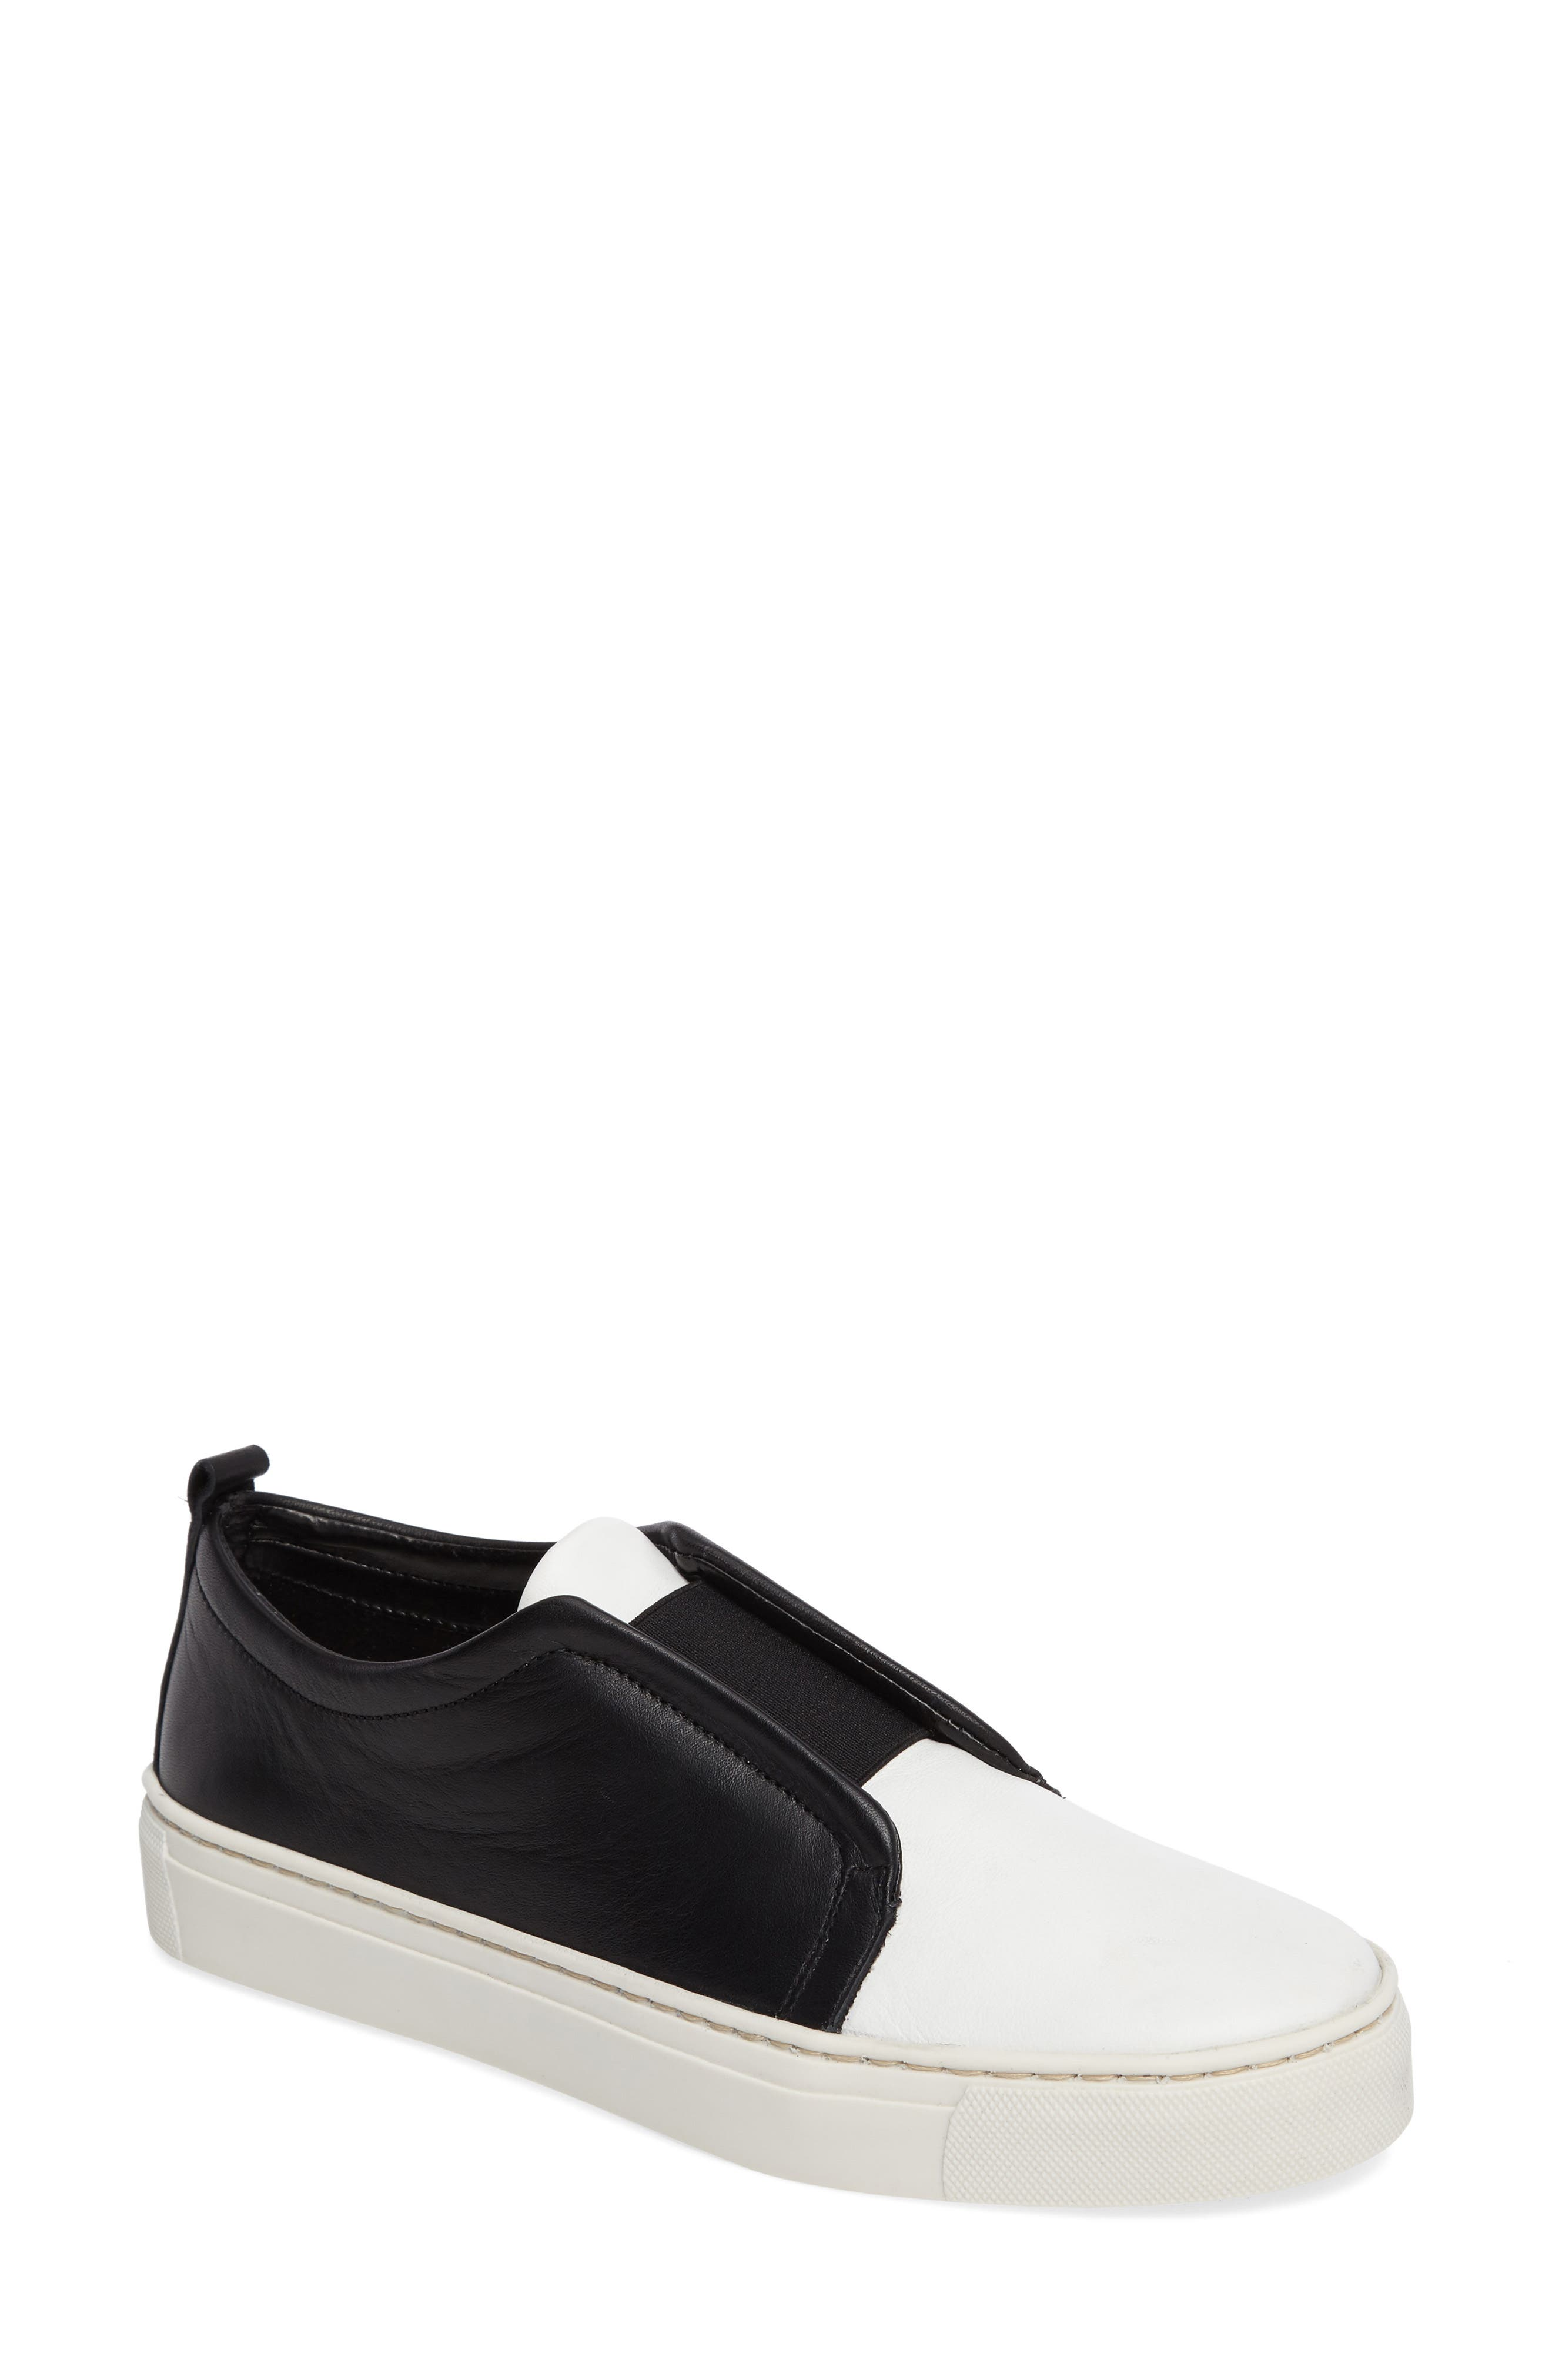 Main Image - The FLEXX Rapture Slip-On Sneaker (Women)